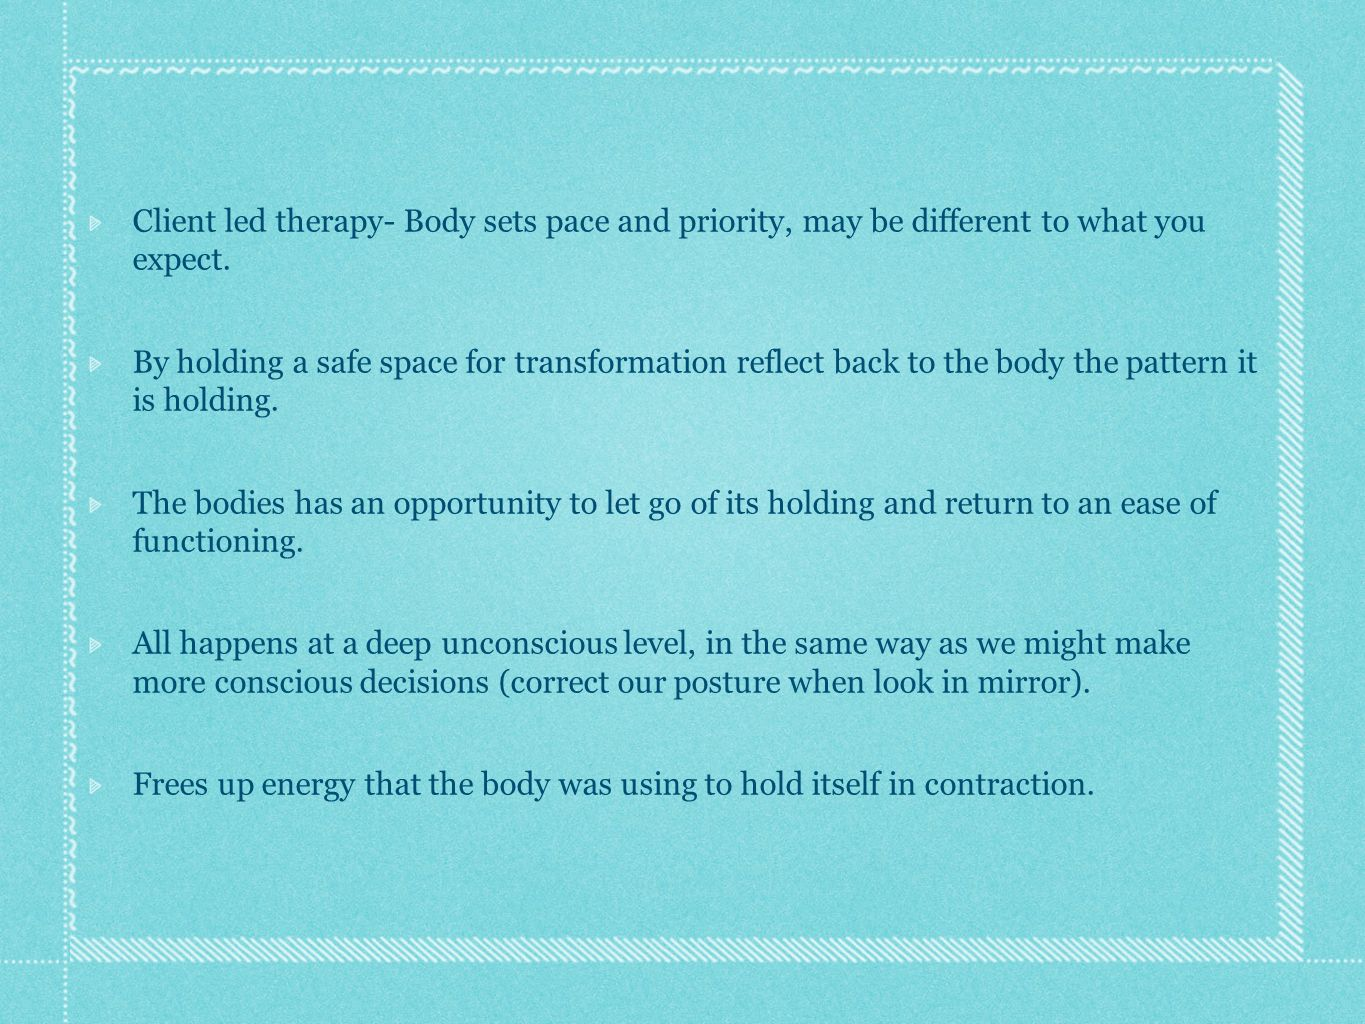 Client led therapy- Body sets pace and priority, may be different to what you expect. By holding a safe space for transformation reflect back to the b